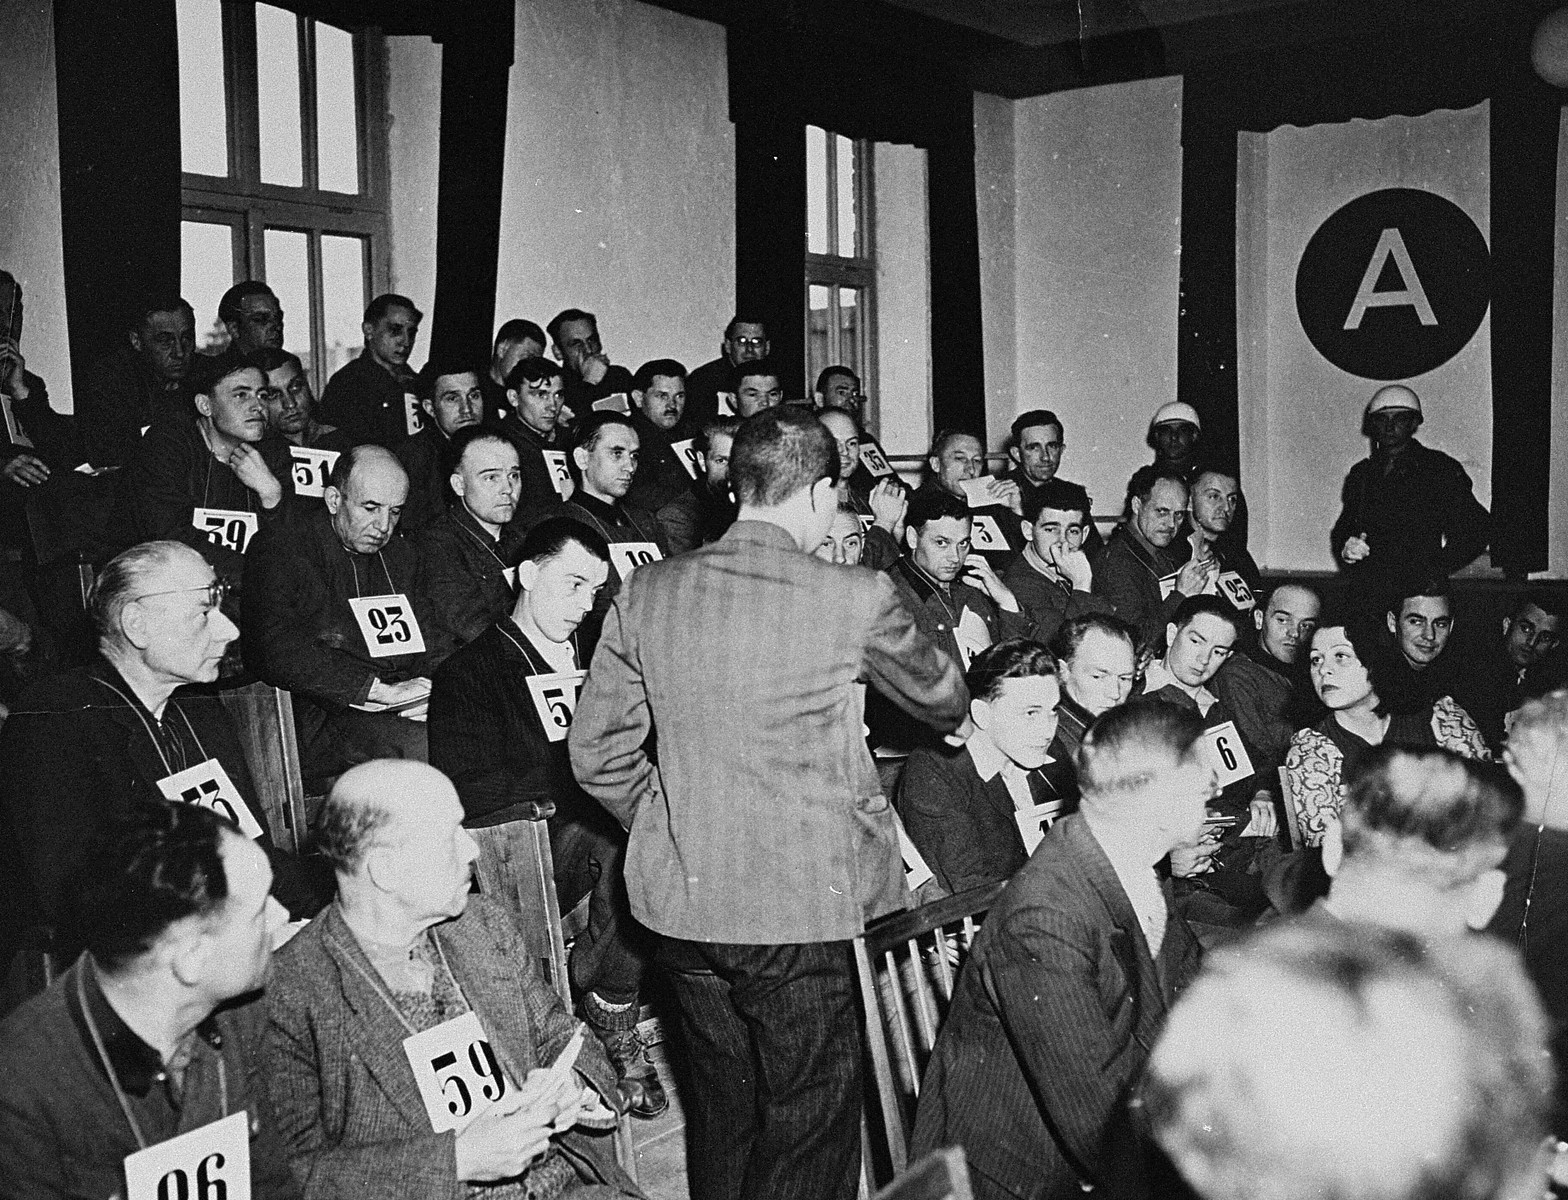 A witness identifies a defendant at the trial of 61 former camp personnel and prisoners from Mauthausen.